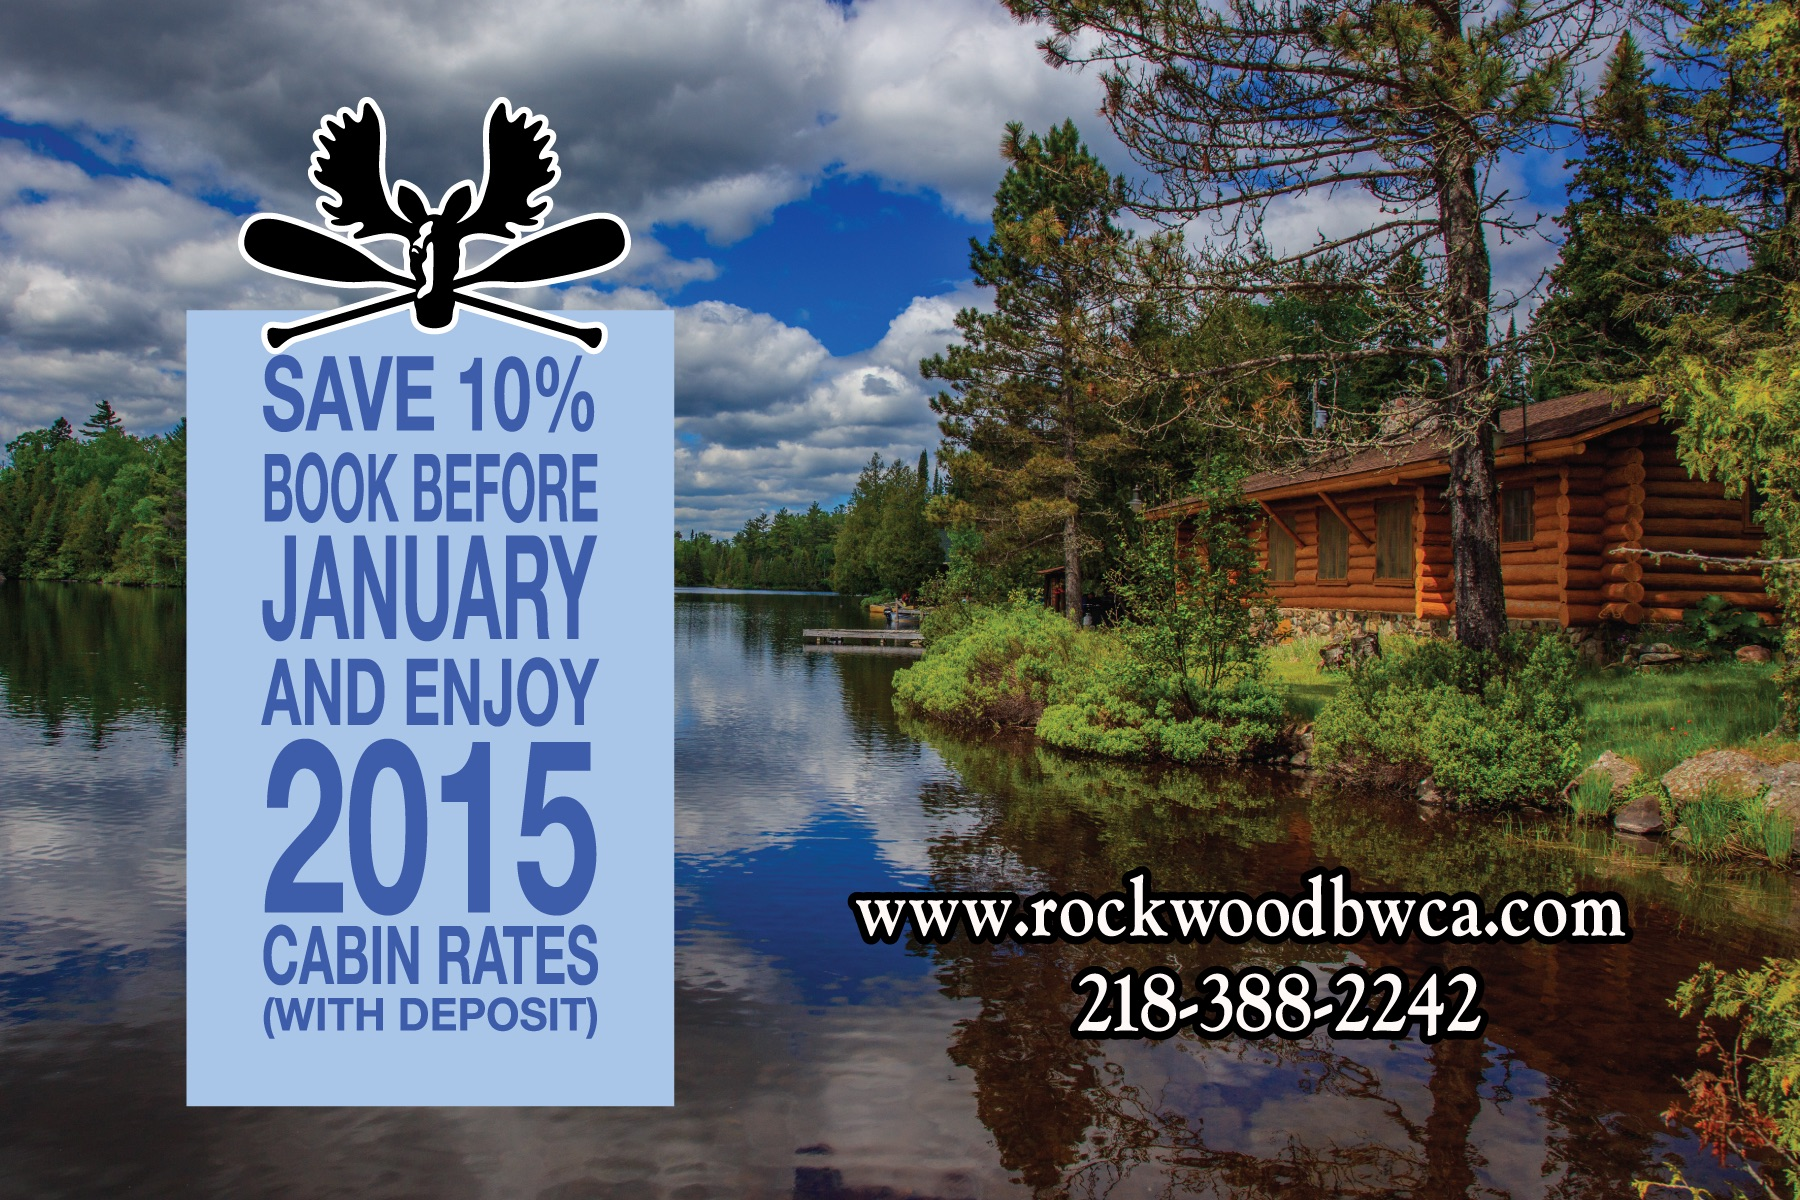 Save 10 percent on Cabins – promotion ended